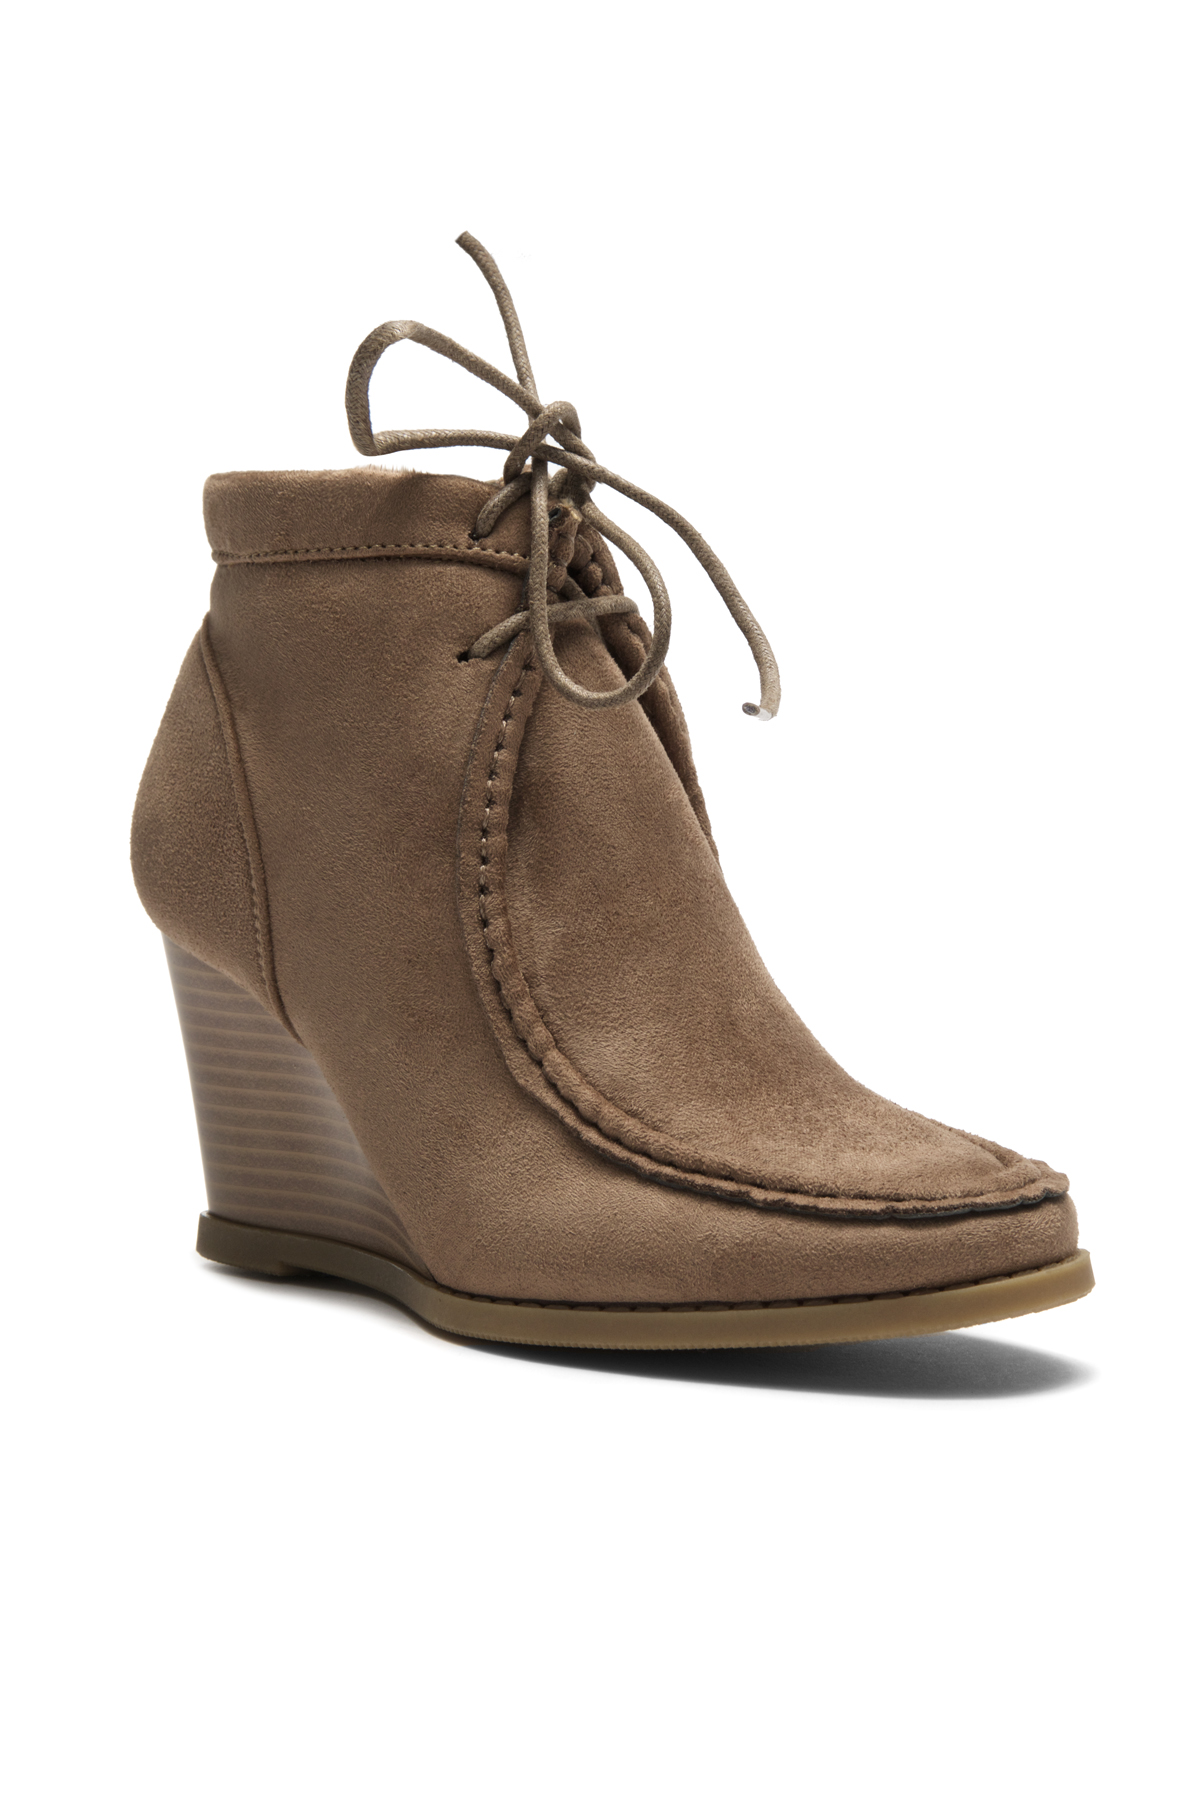 31d54ce4359f ... Women s Eaddy Ysabel Lace-up Wedge Chukka Boot - Khaki ...